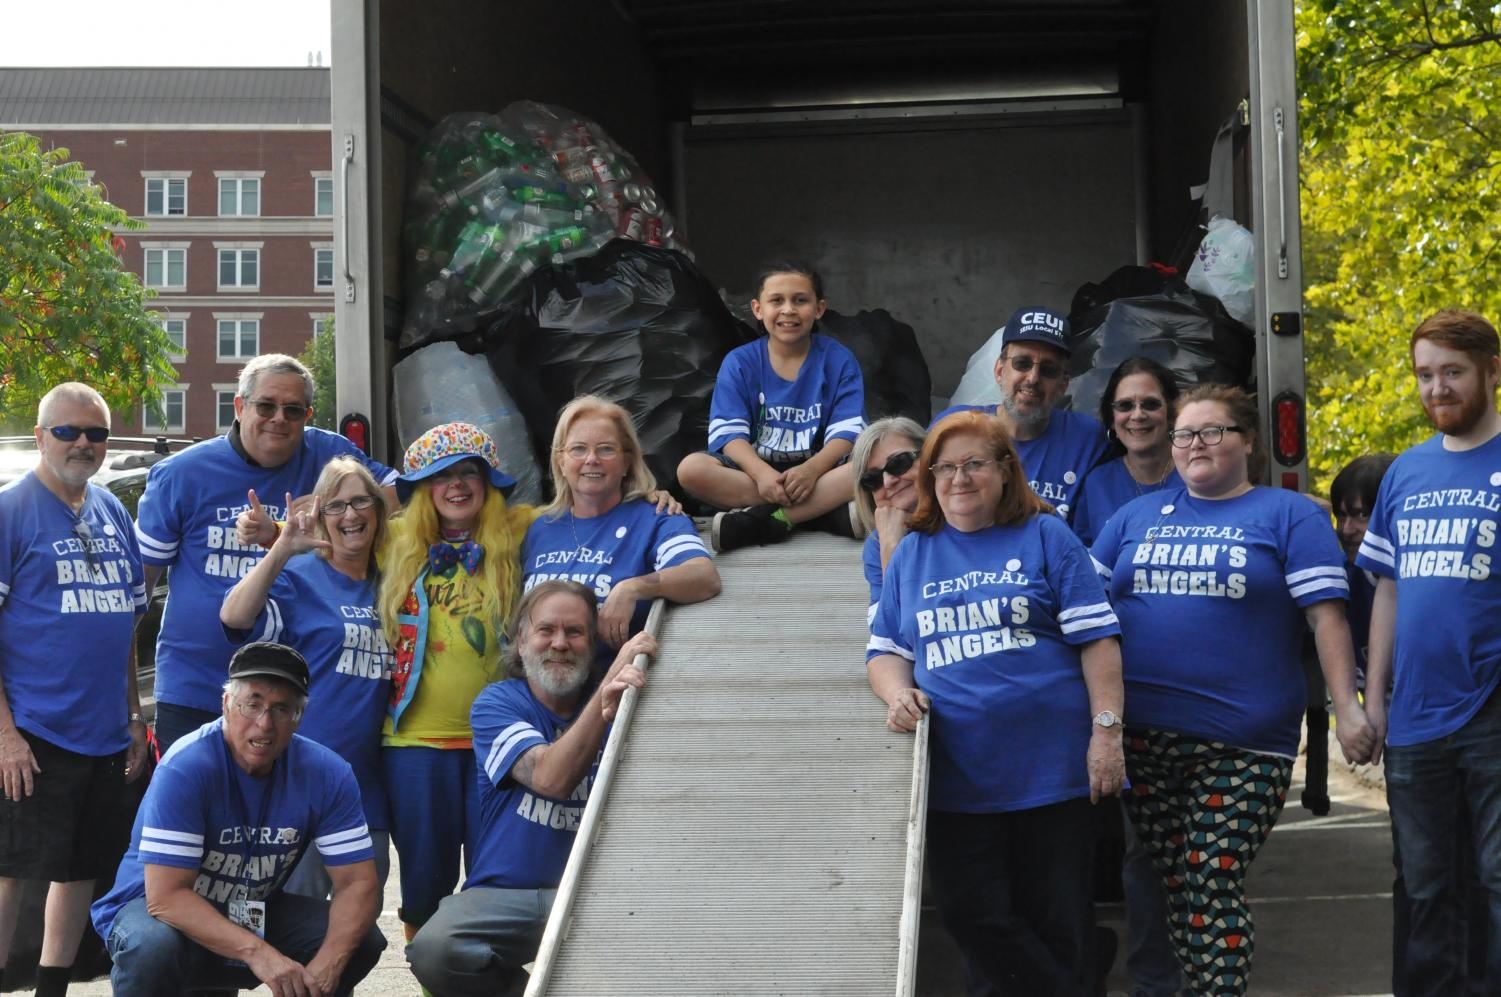 All+of+the+Brian%27s+Angels+volunteers+standing+with+their+truck+full+of+donations.